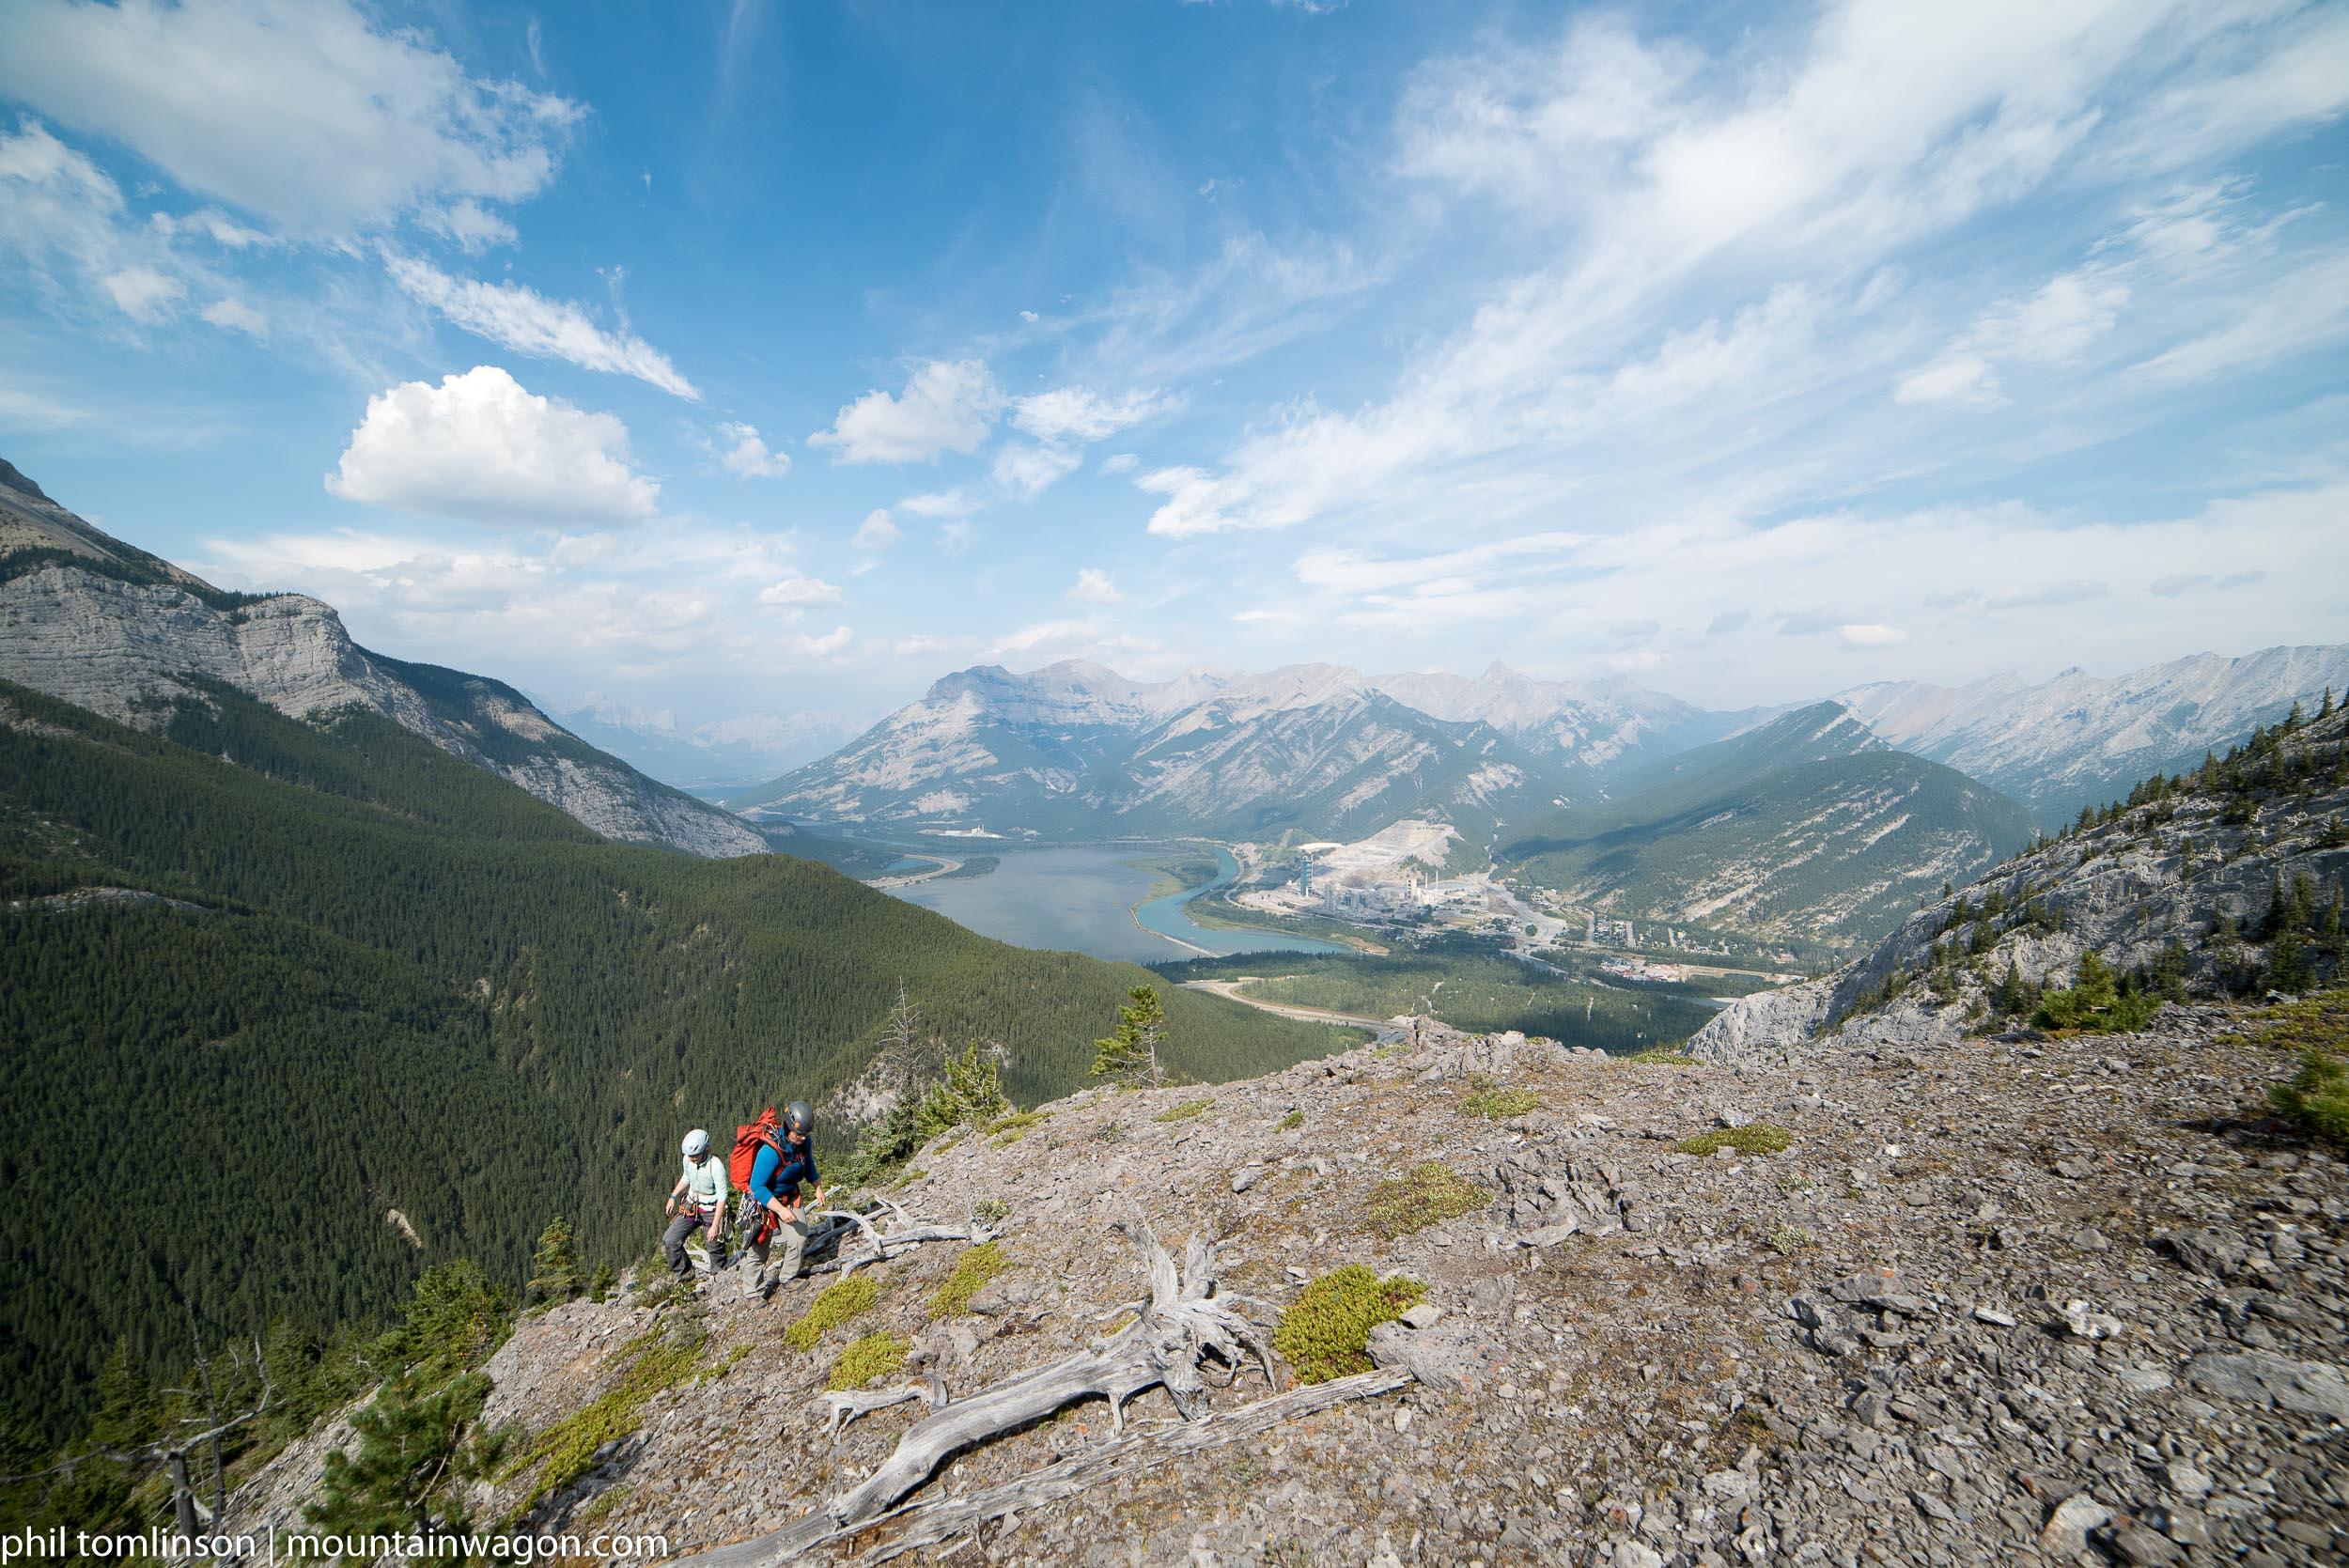 The 400m scramble pitch finishes in a bit of an alpine meadow - with incredible views